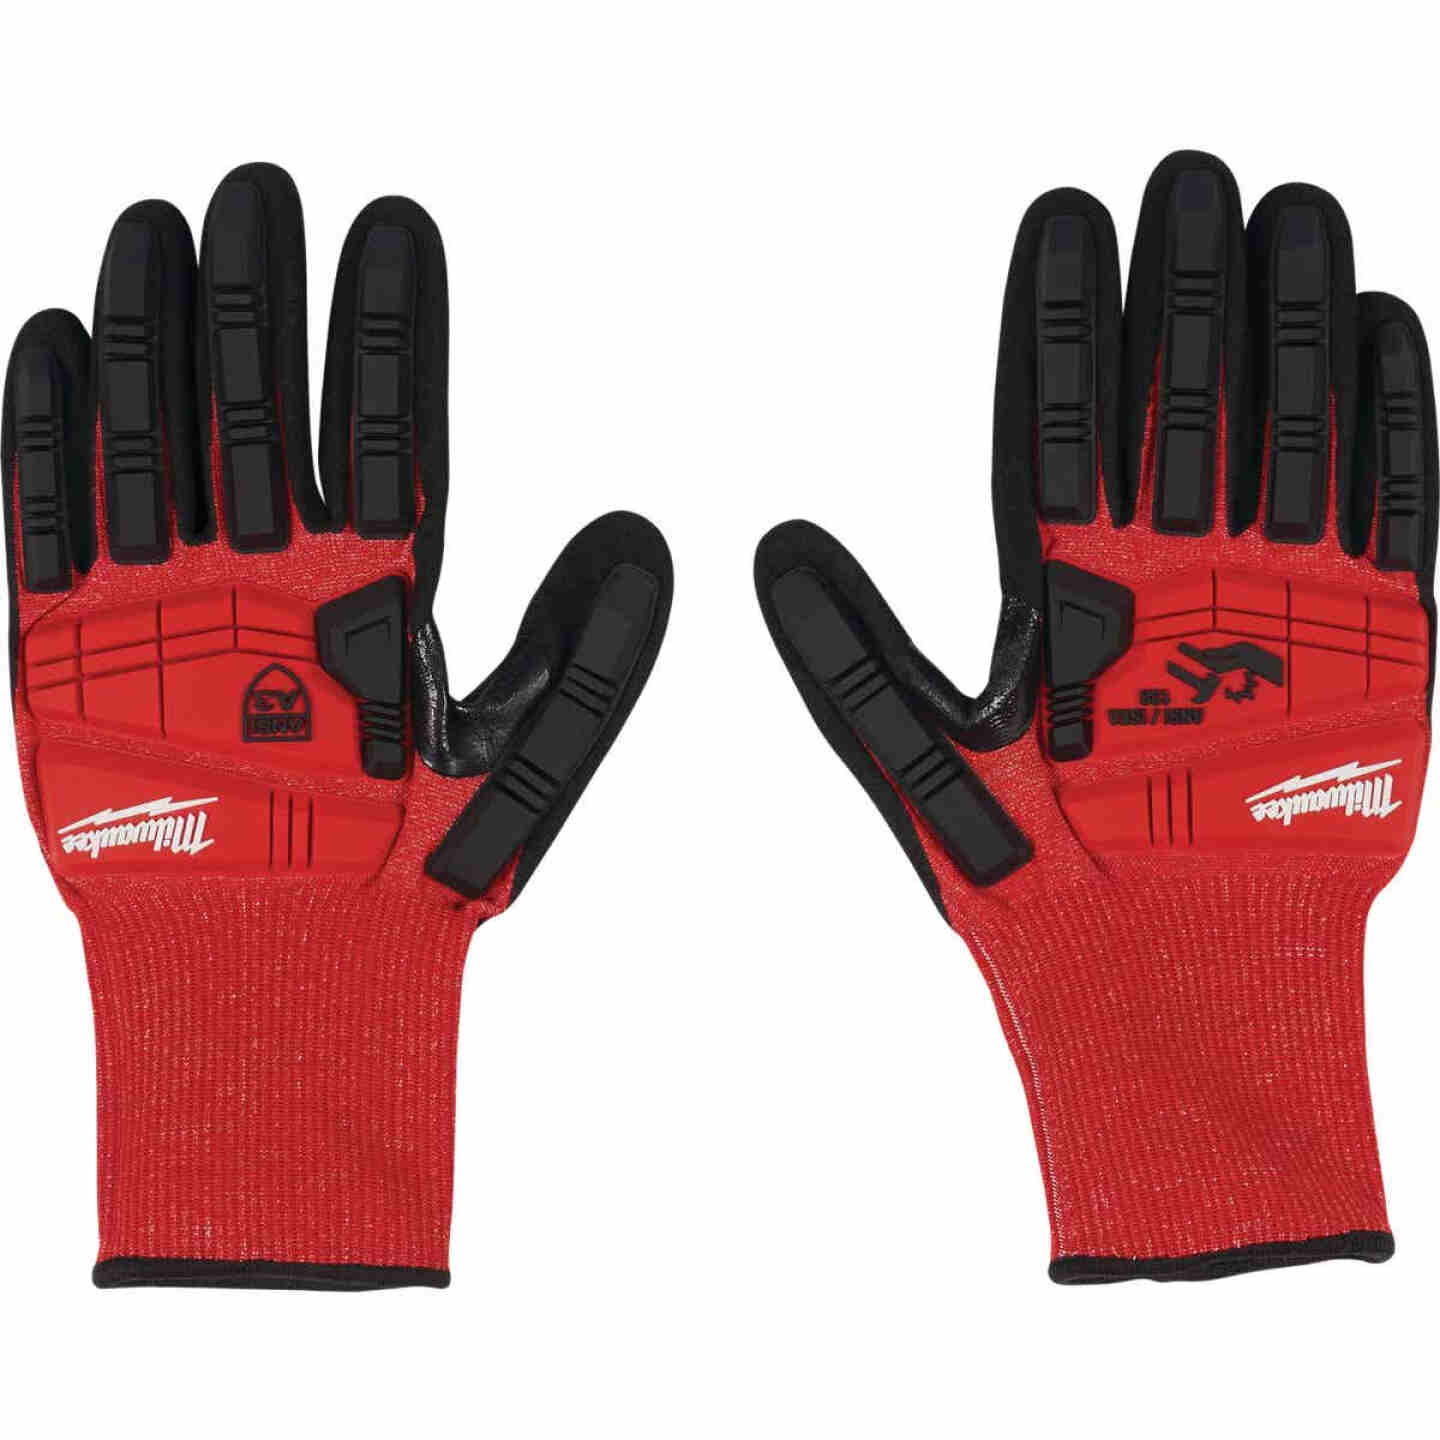 Milwaukee Impact Cut Level 3 XL Men's Nitrile Dipped Work Gloves Image 2